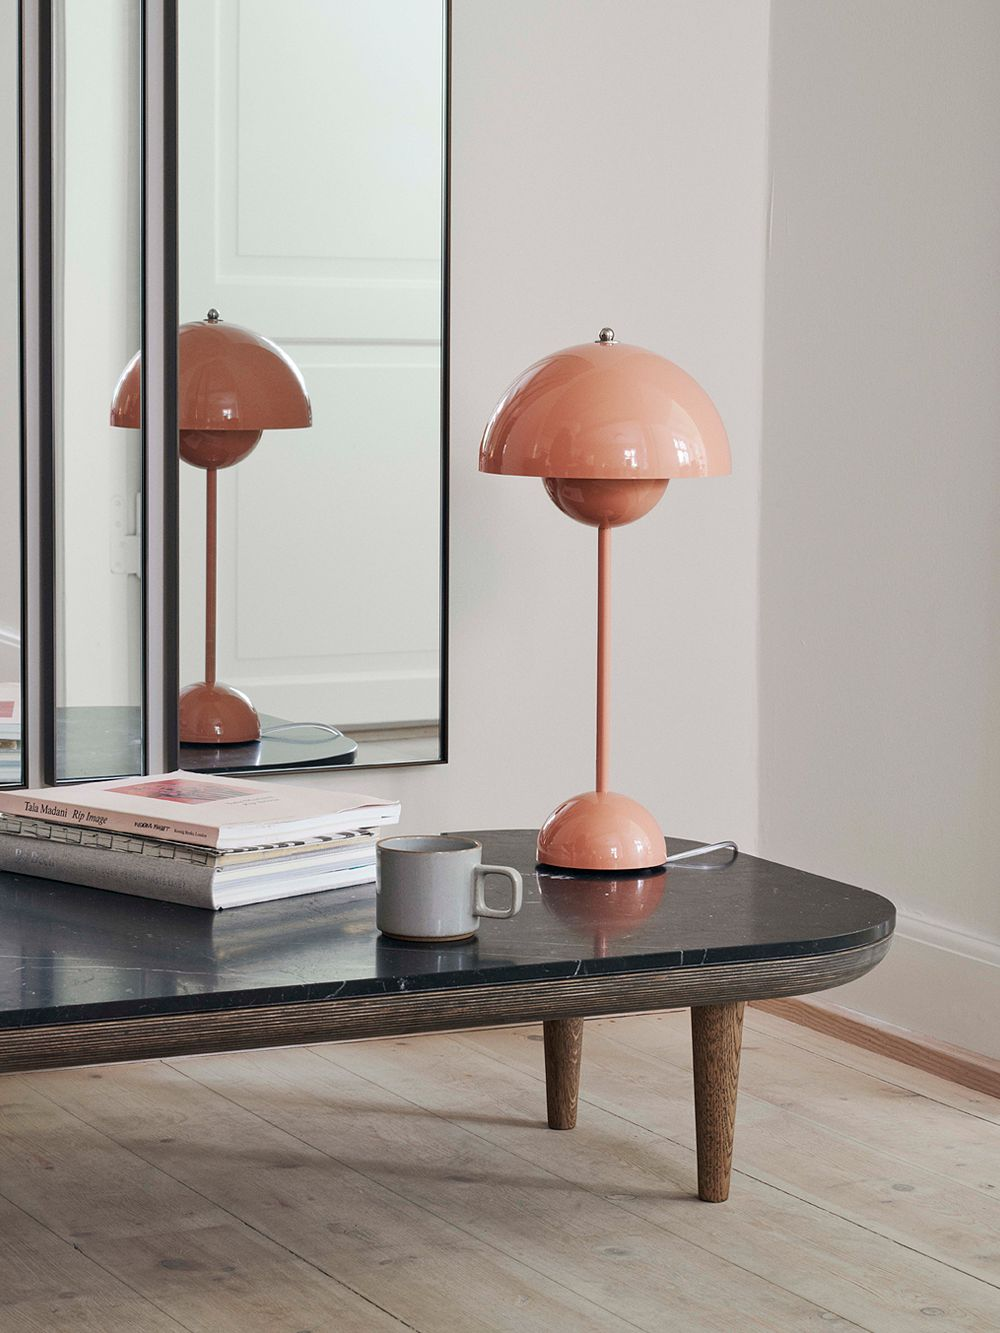 &Tradition's Flowerpot VP3 table lamp in beige red